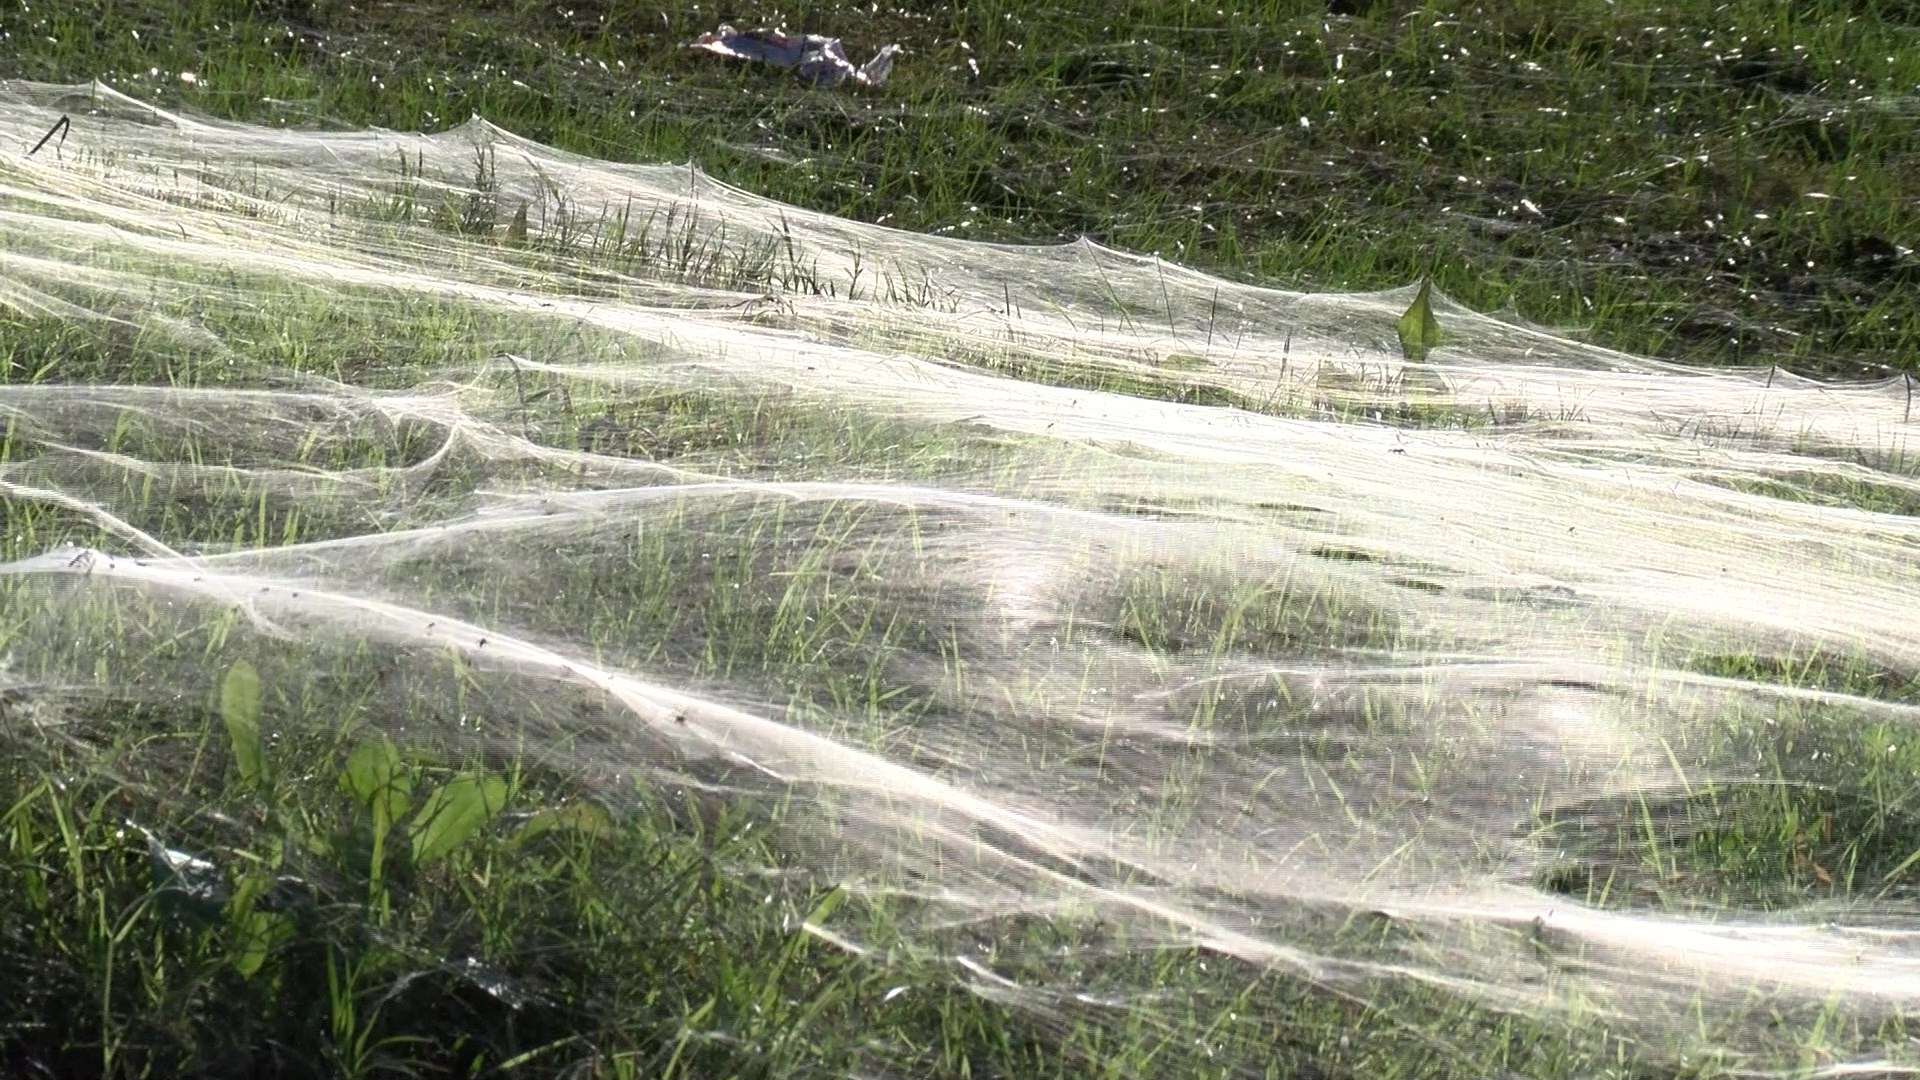 memphis spider, memphis spider november 2015, millions of spiders invade memphis, spiders infest memphis, memphis spiders problems, memphis spider plague